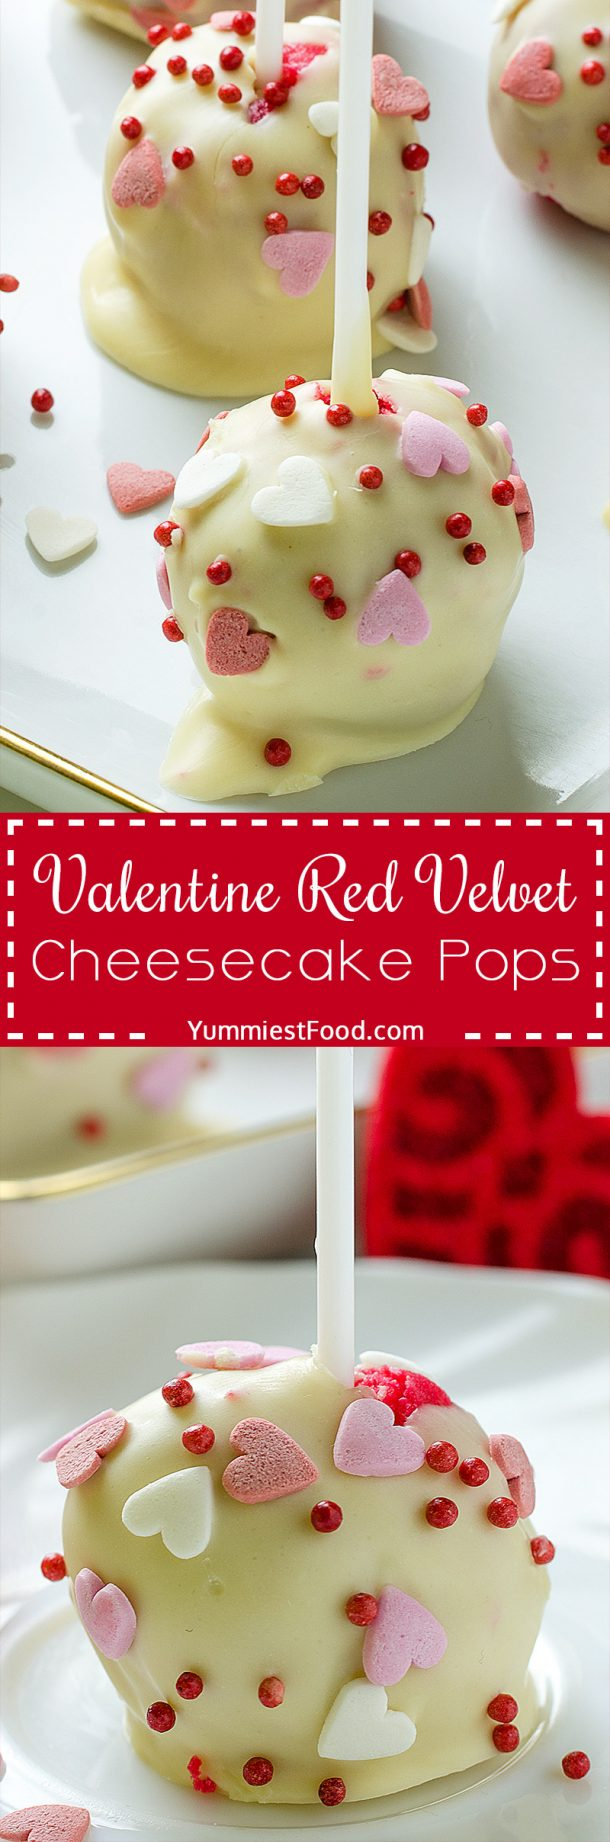 Valentine Red Velvet Cheesecake Pops | Yummiest Food - Easy Valentine's Day Dessert Recipes - Pink and Red Party Treats #valentinesdaydesserts #easyvalentinesdaydesserts #valentinesdaytreats #pinkandred #pinkdesserts #reddesserts #valentinesdayparty #valentinesday #heartshapedtreats #hearts #love